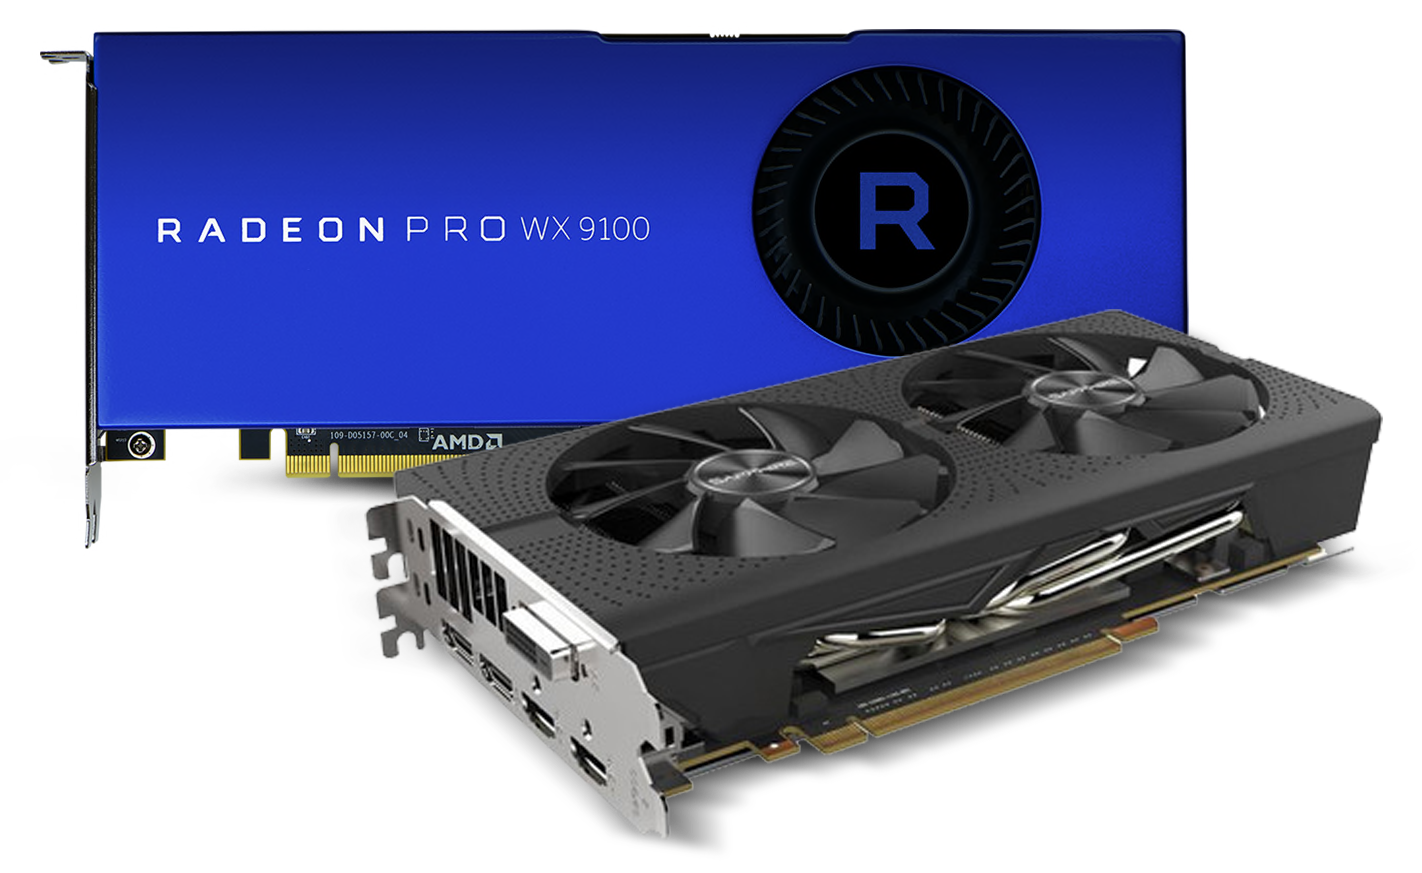 Radeon Pro WX 9100 and Radeon RX 580 Video Cards